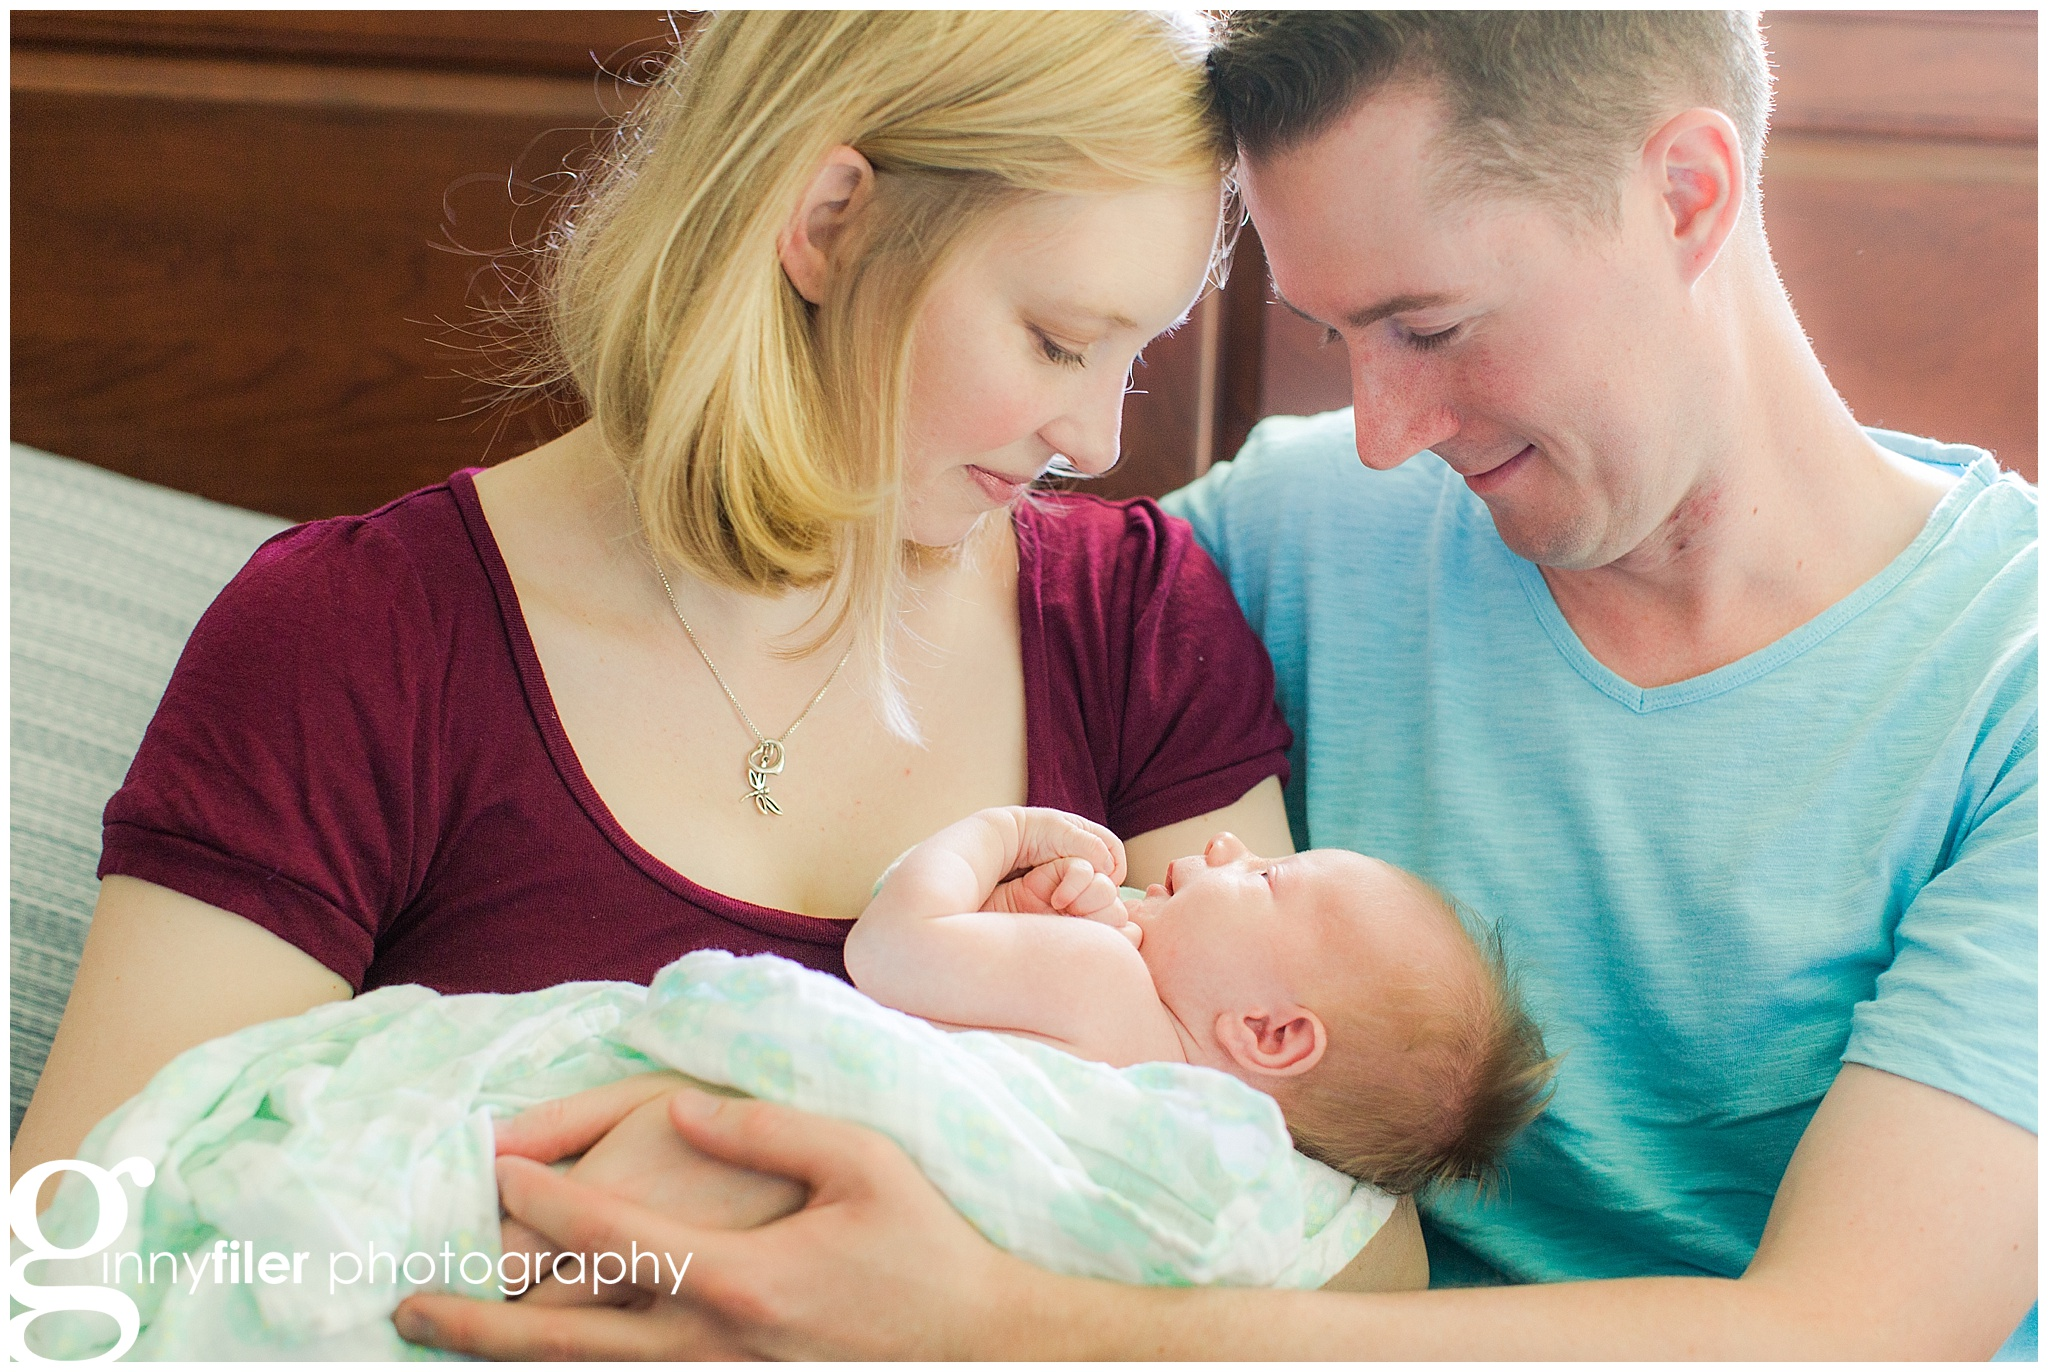 family_photography_newborn_0093.jpg